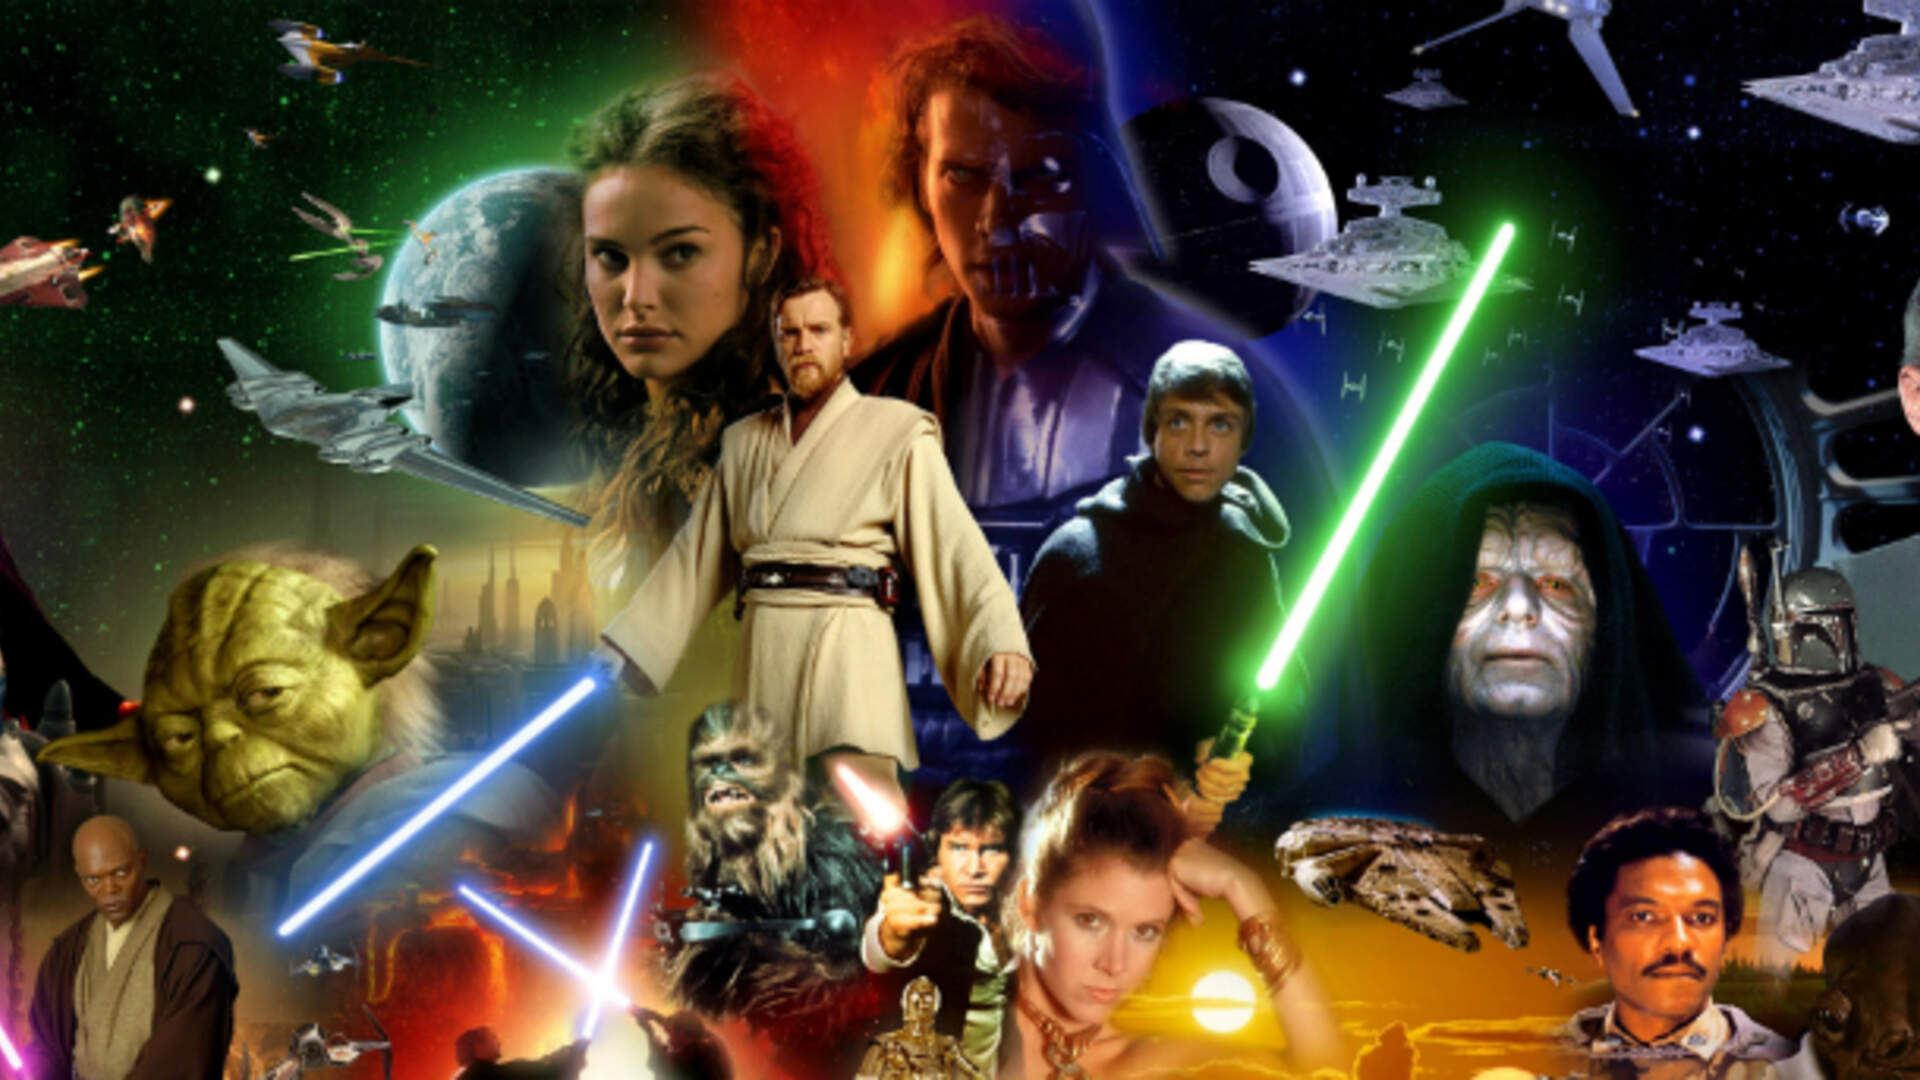 Star Wars Should Do for Video Games What It's Doing With the Movies